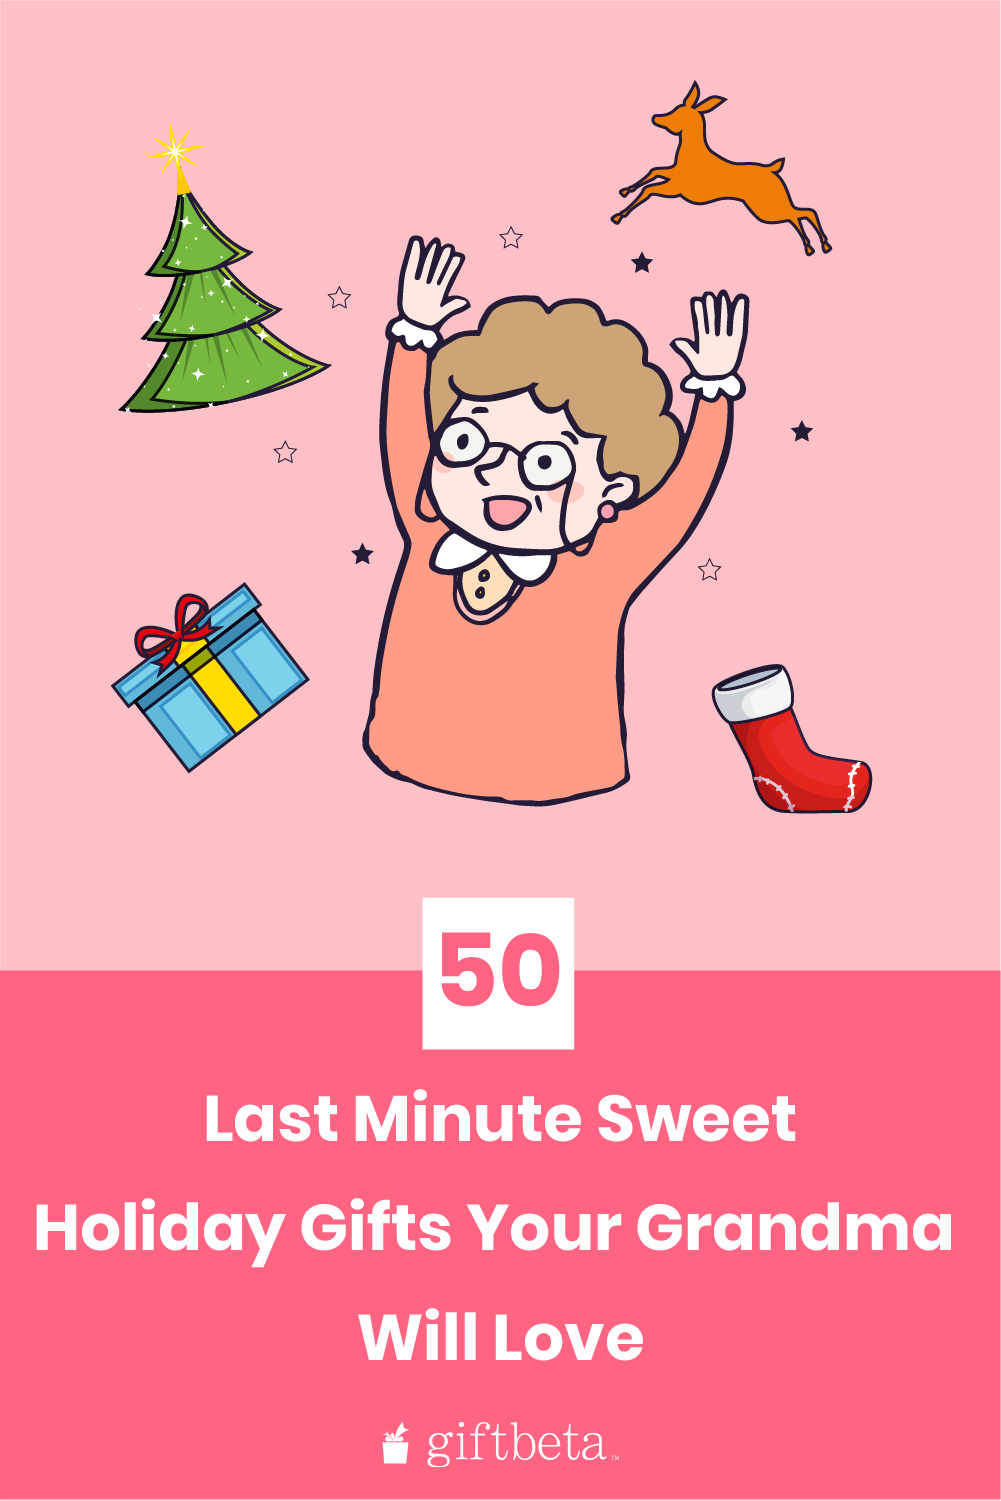 While getting the right gift for your grandmother can seem